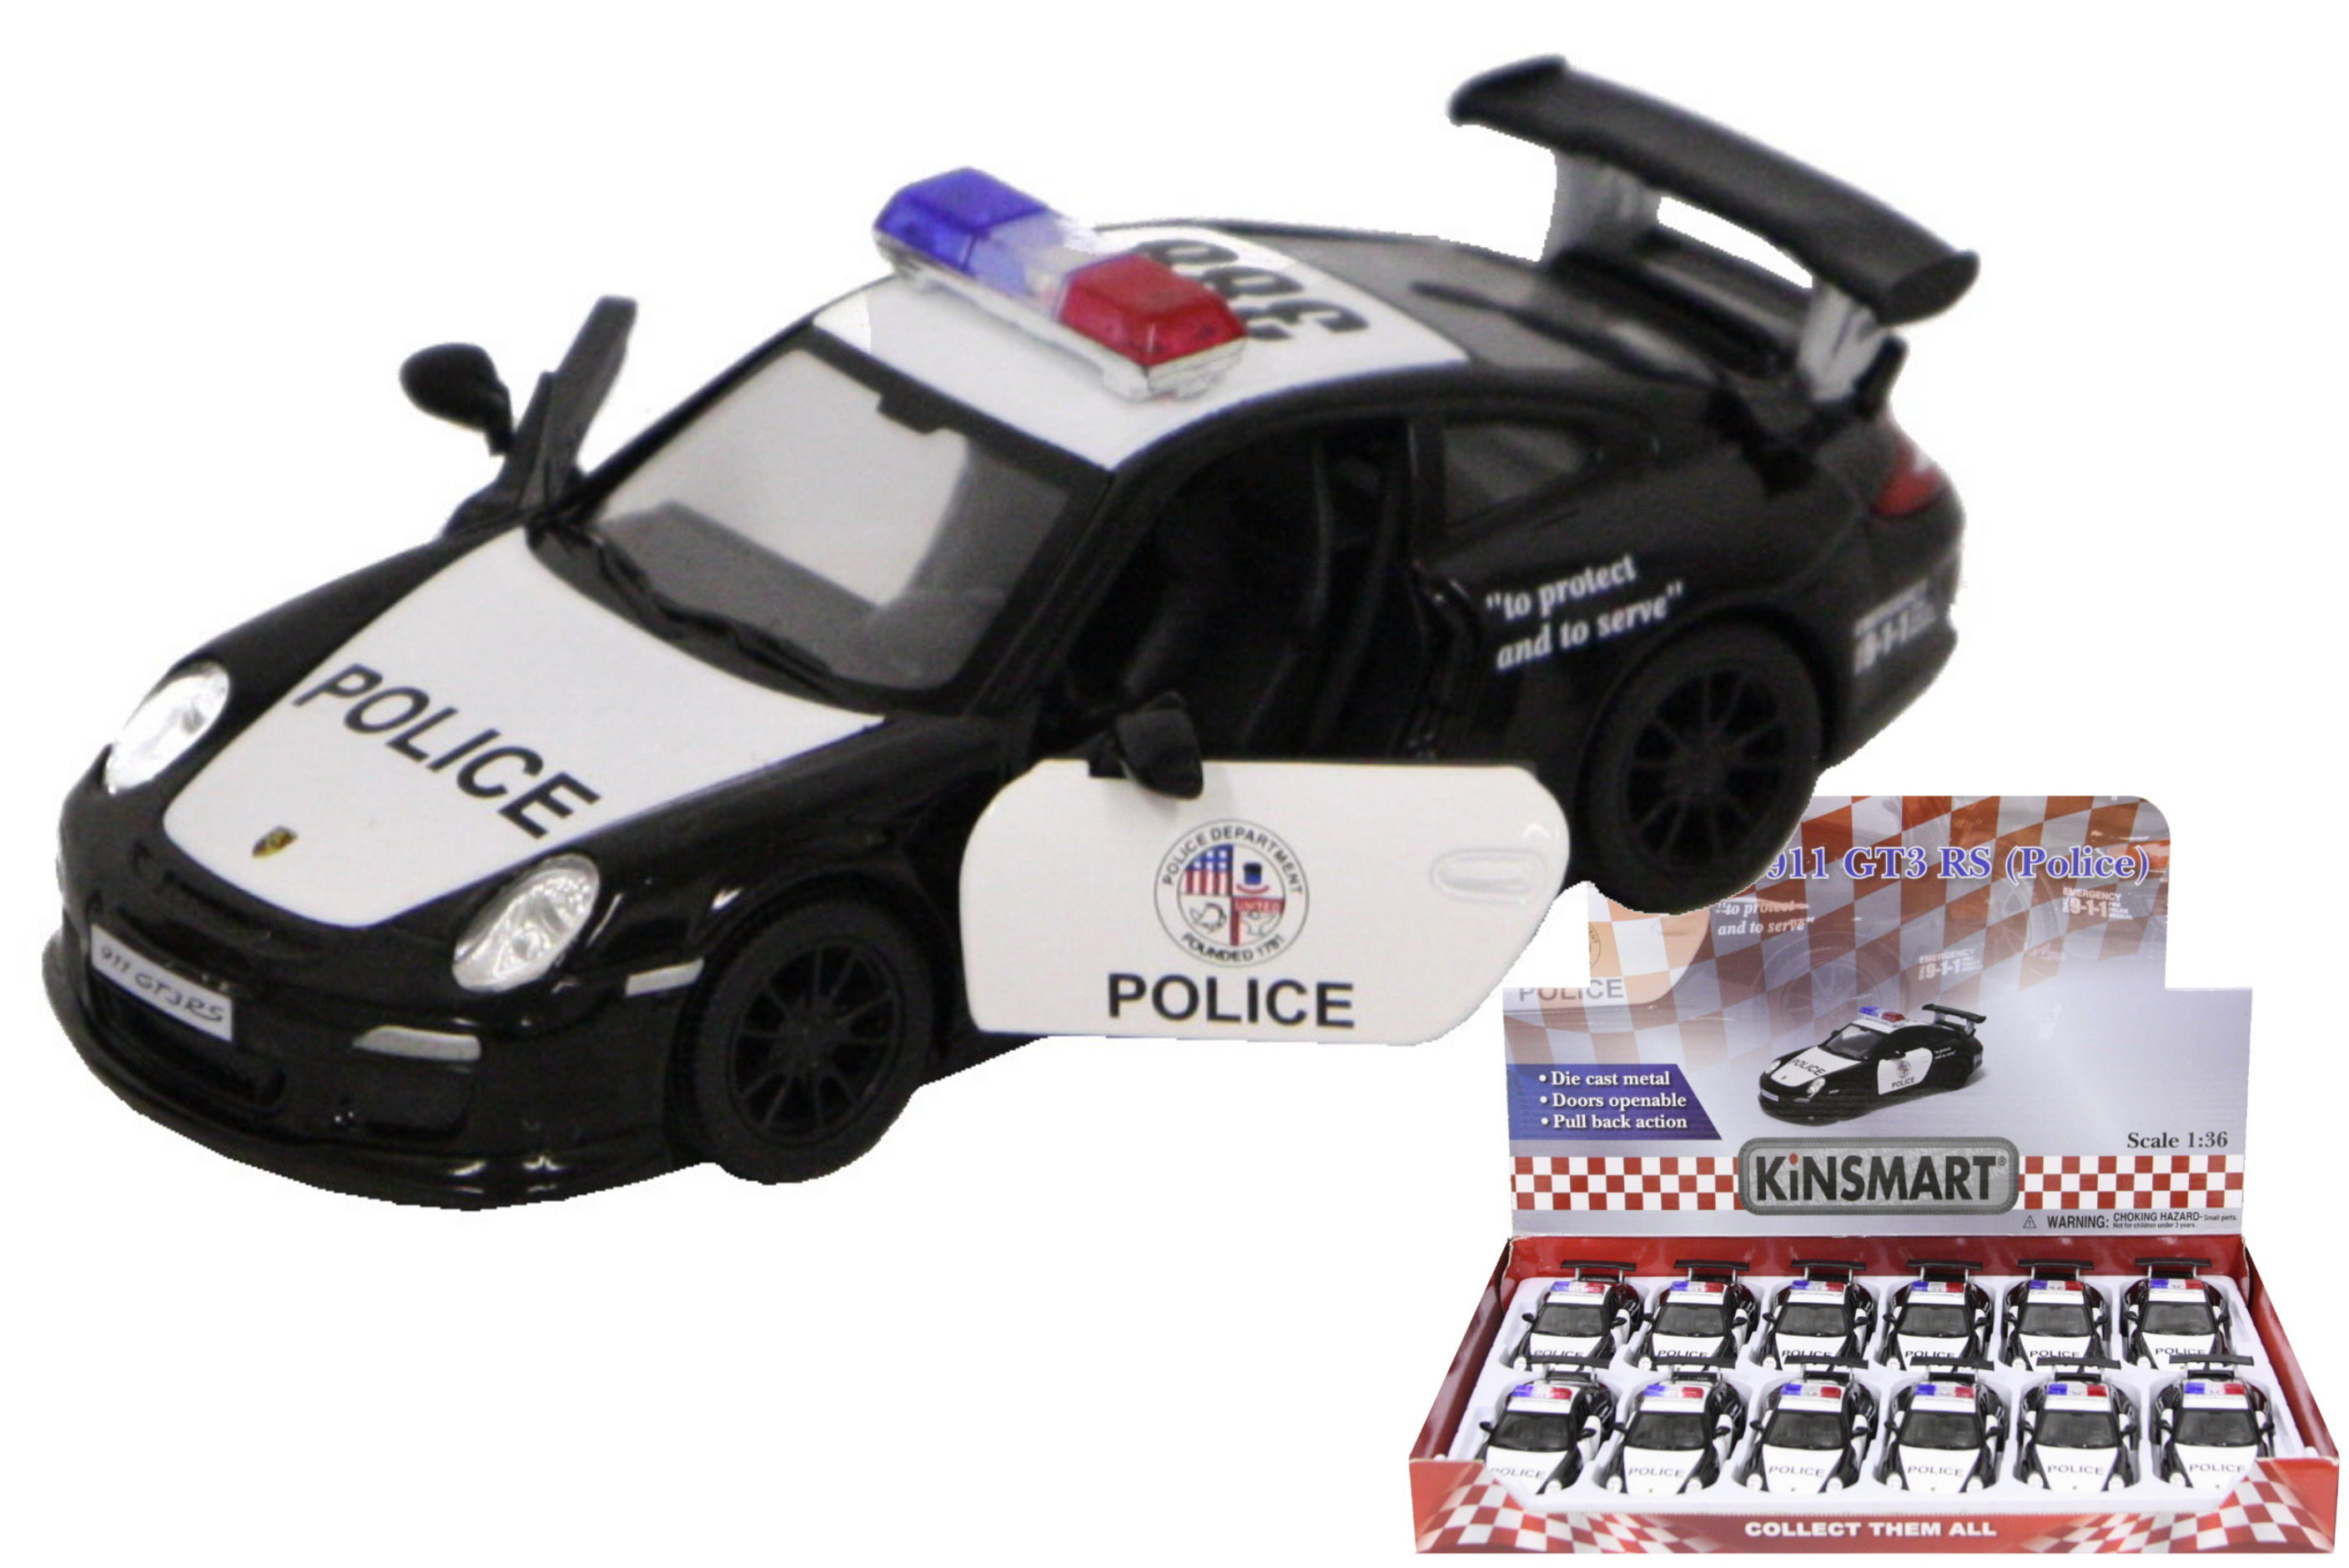 1:36sc D/C Porsche 911 Gt3 Rs Police Car In Display Box